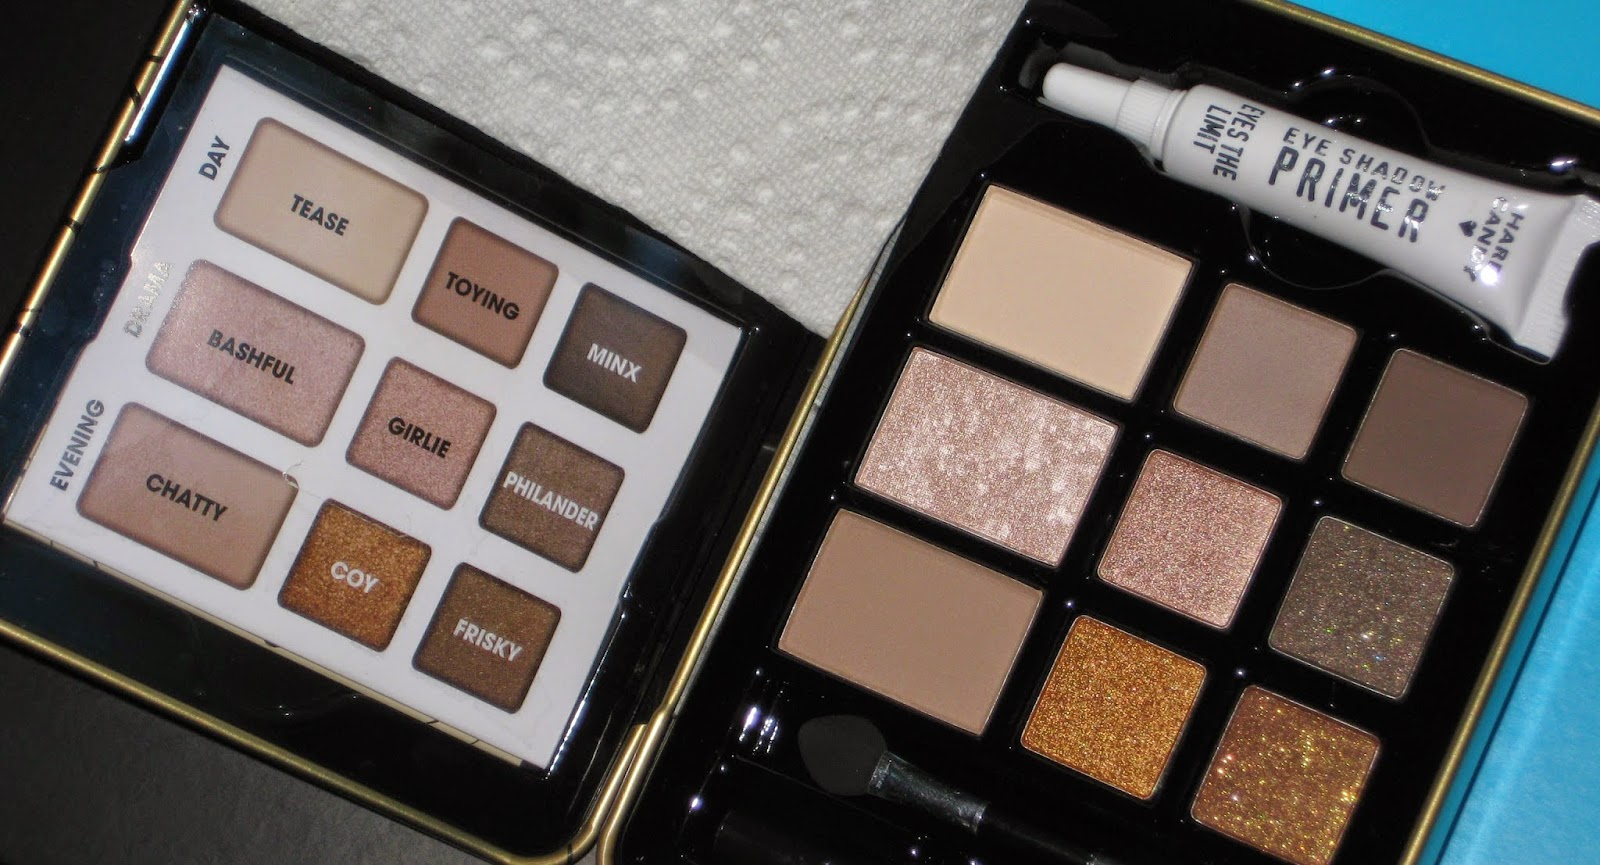 Lady Lostris Beauty Review Hard Candy Natural Eyes Palette Chalk